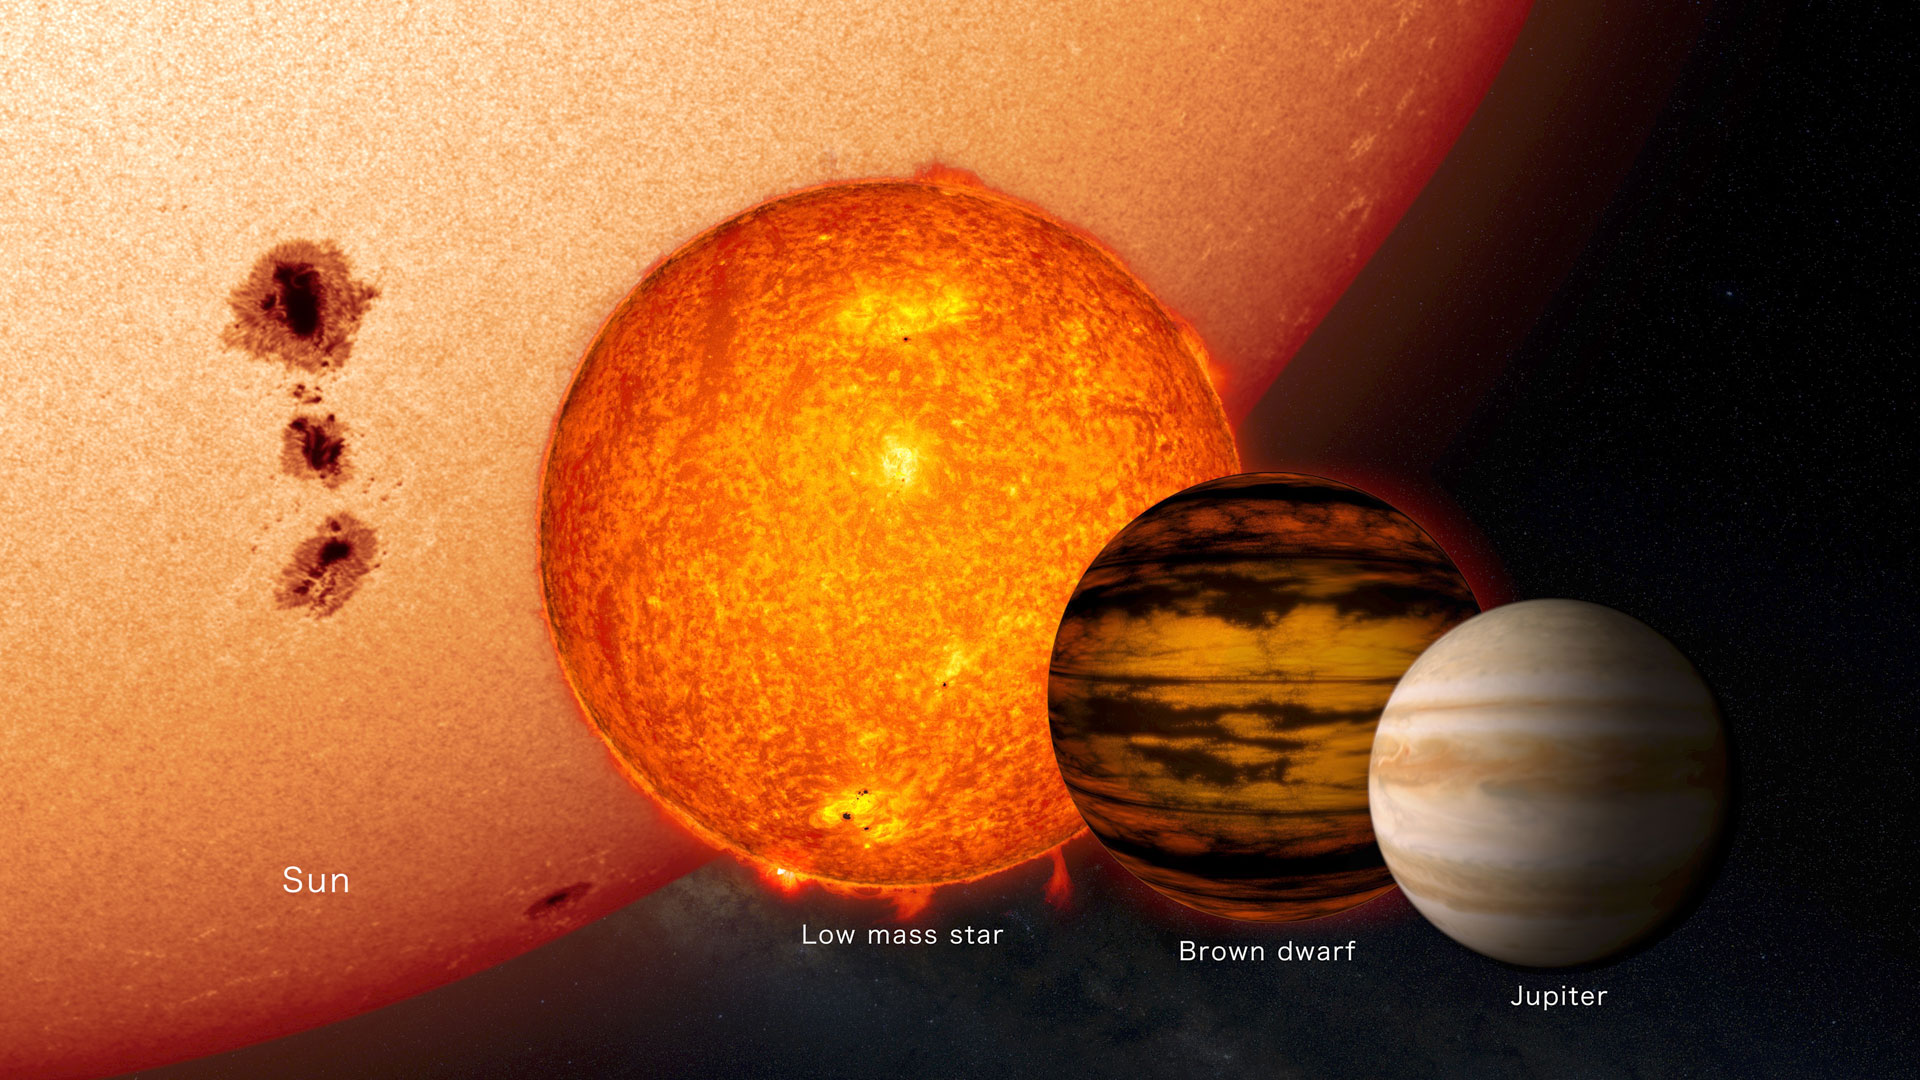 backyard worlds planet 9 citizen science project finds a brown dwarf